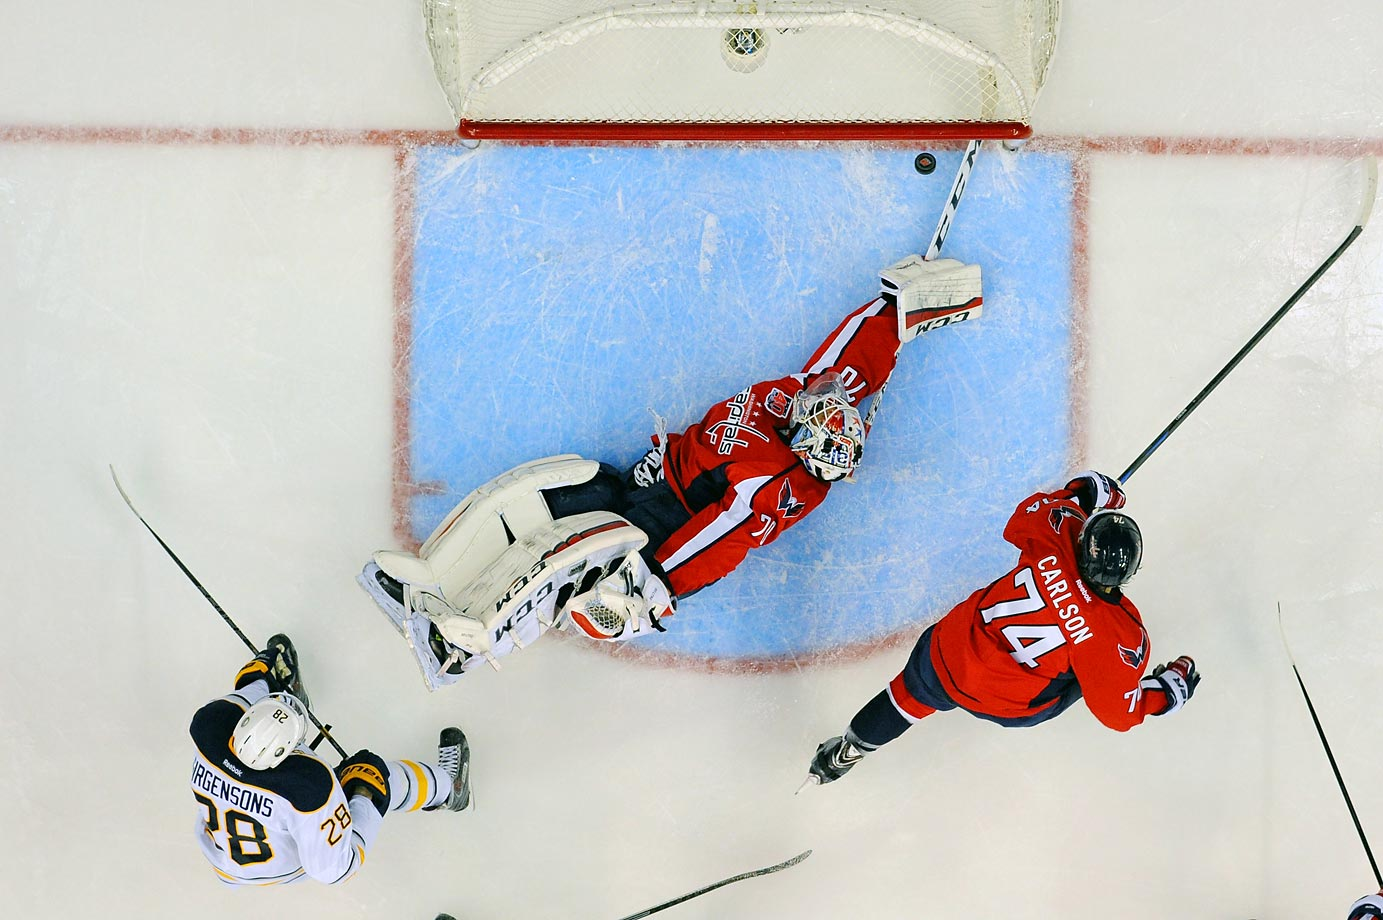 Capitals goalie Braden Holtby gives up this goal to Sabres center Zemgus Girgensons. The Sabres defeated Washington 2-1.